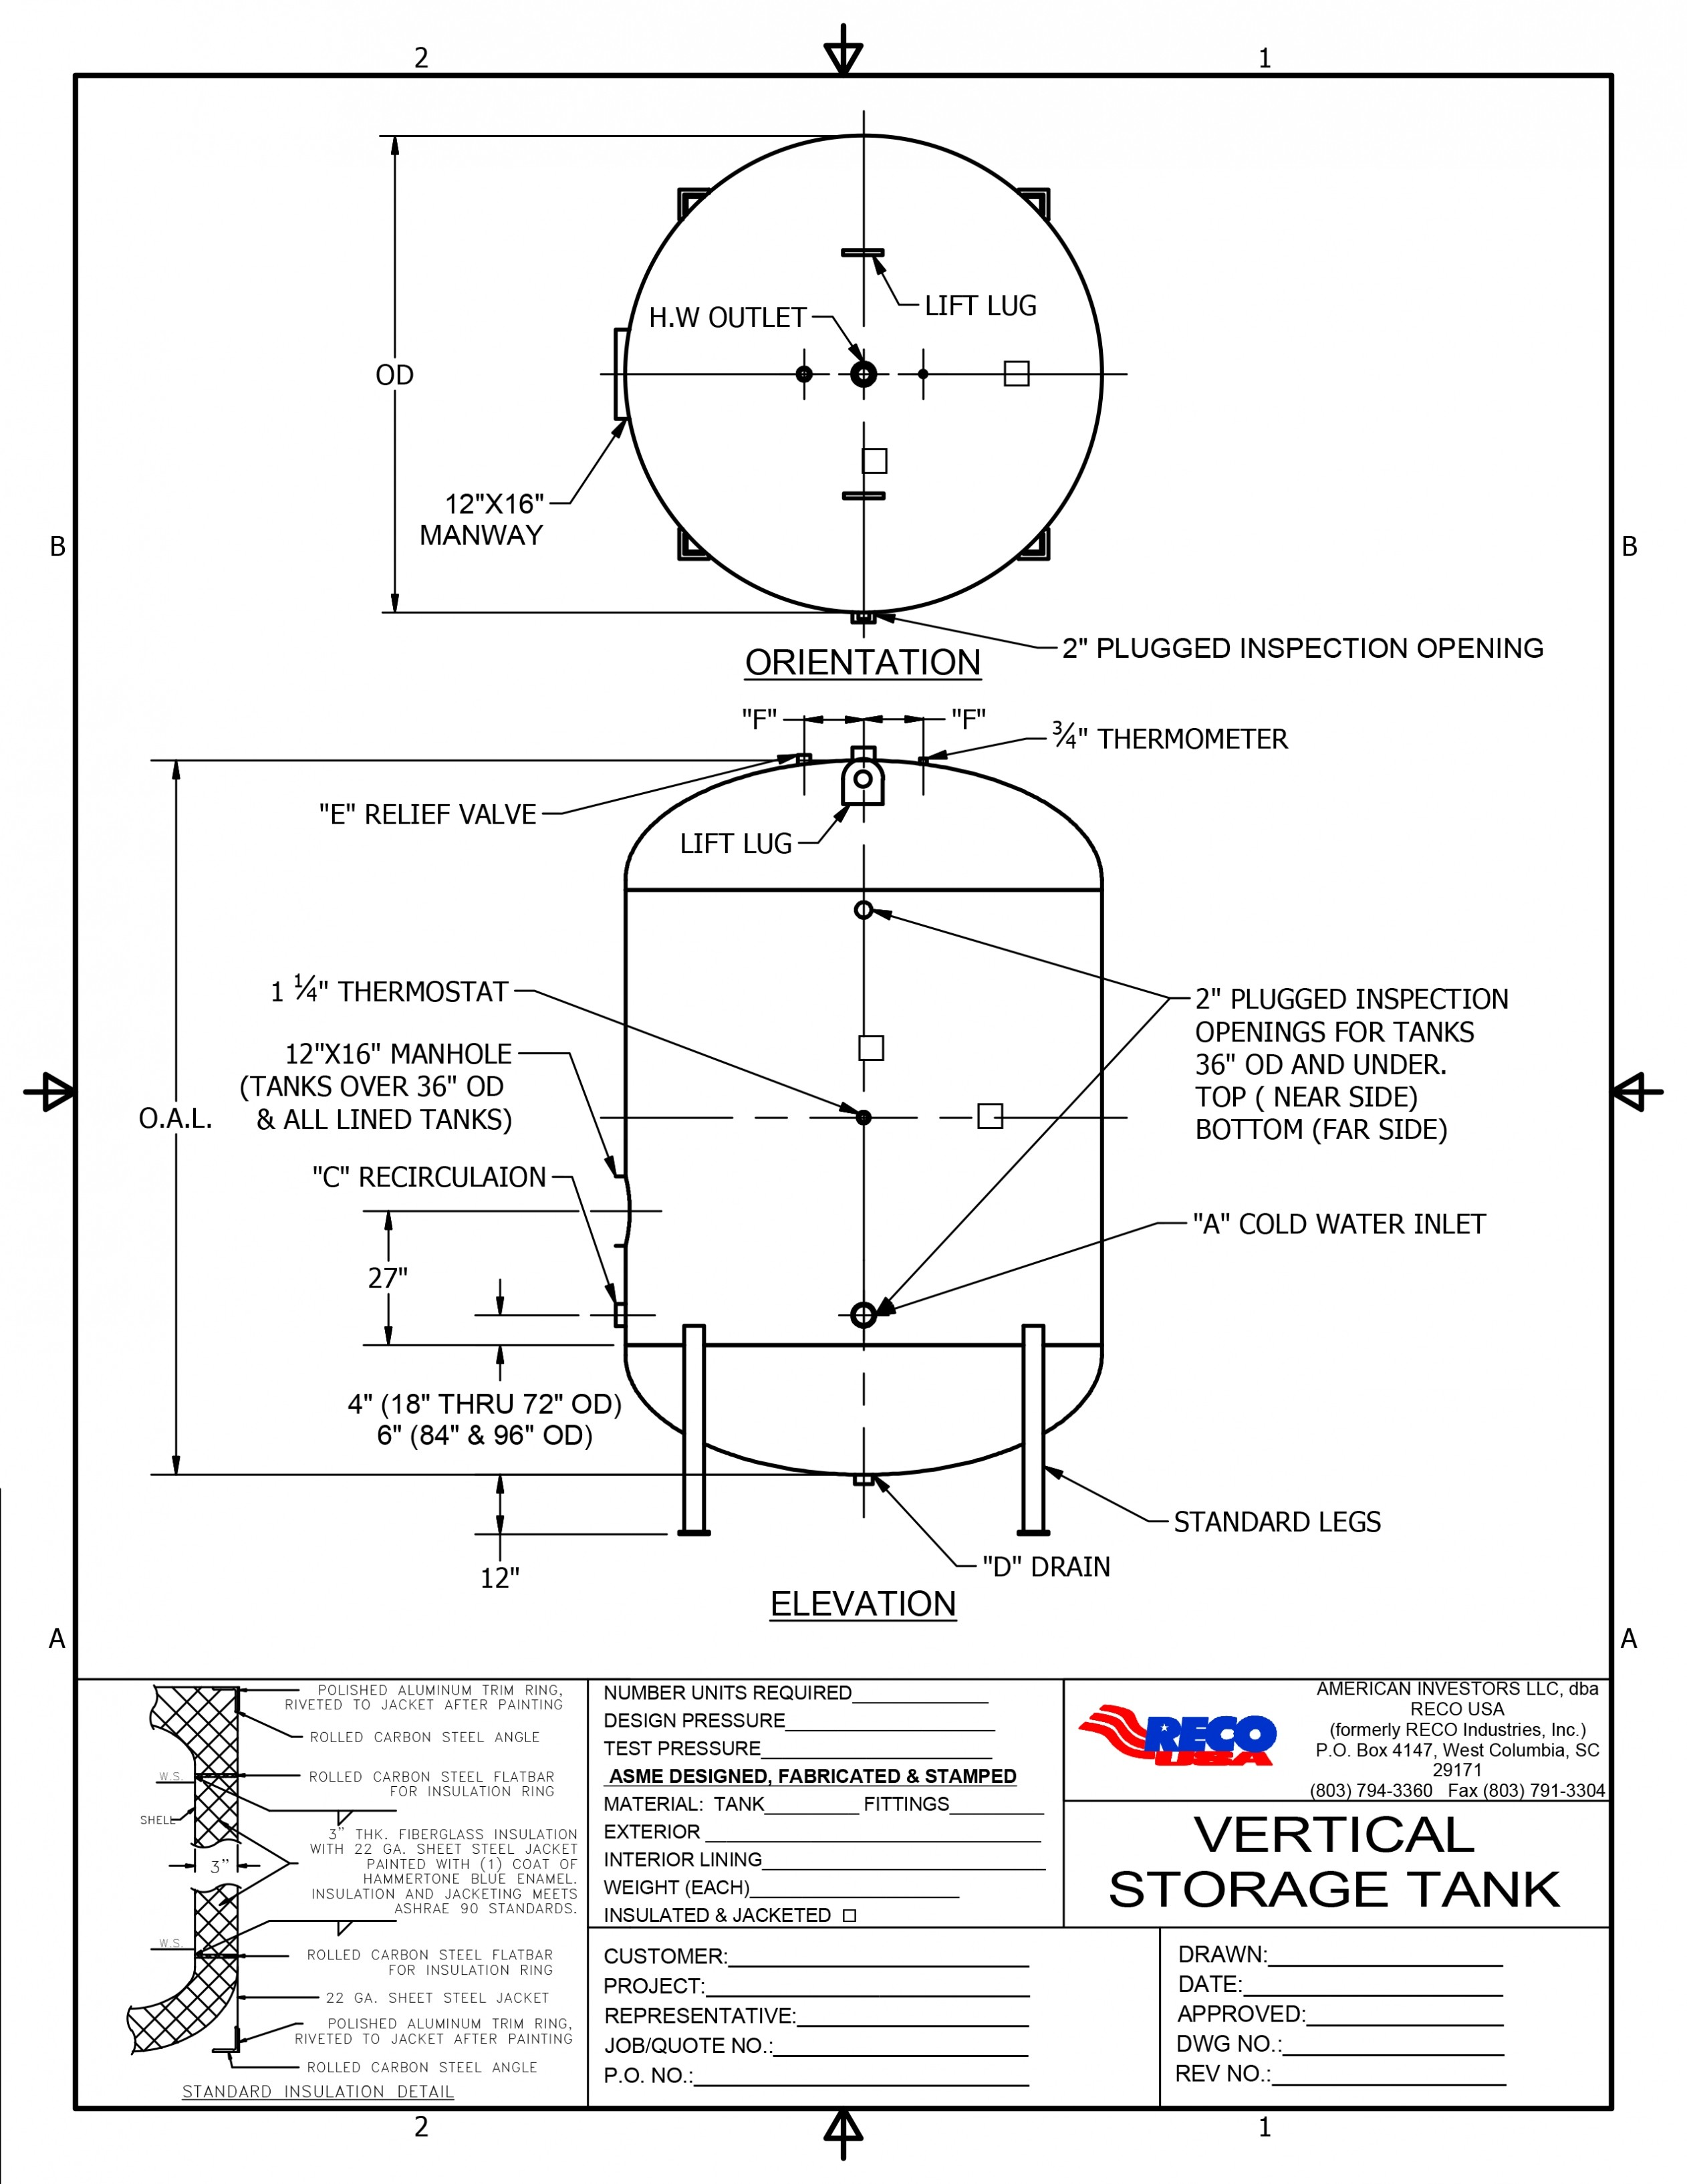 Car Fuel System Diagram International Fuel Diagram Wiring Diagram Services • Of Car Fuel System Diagram